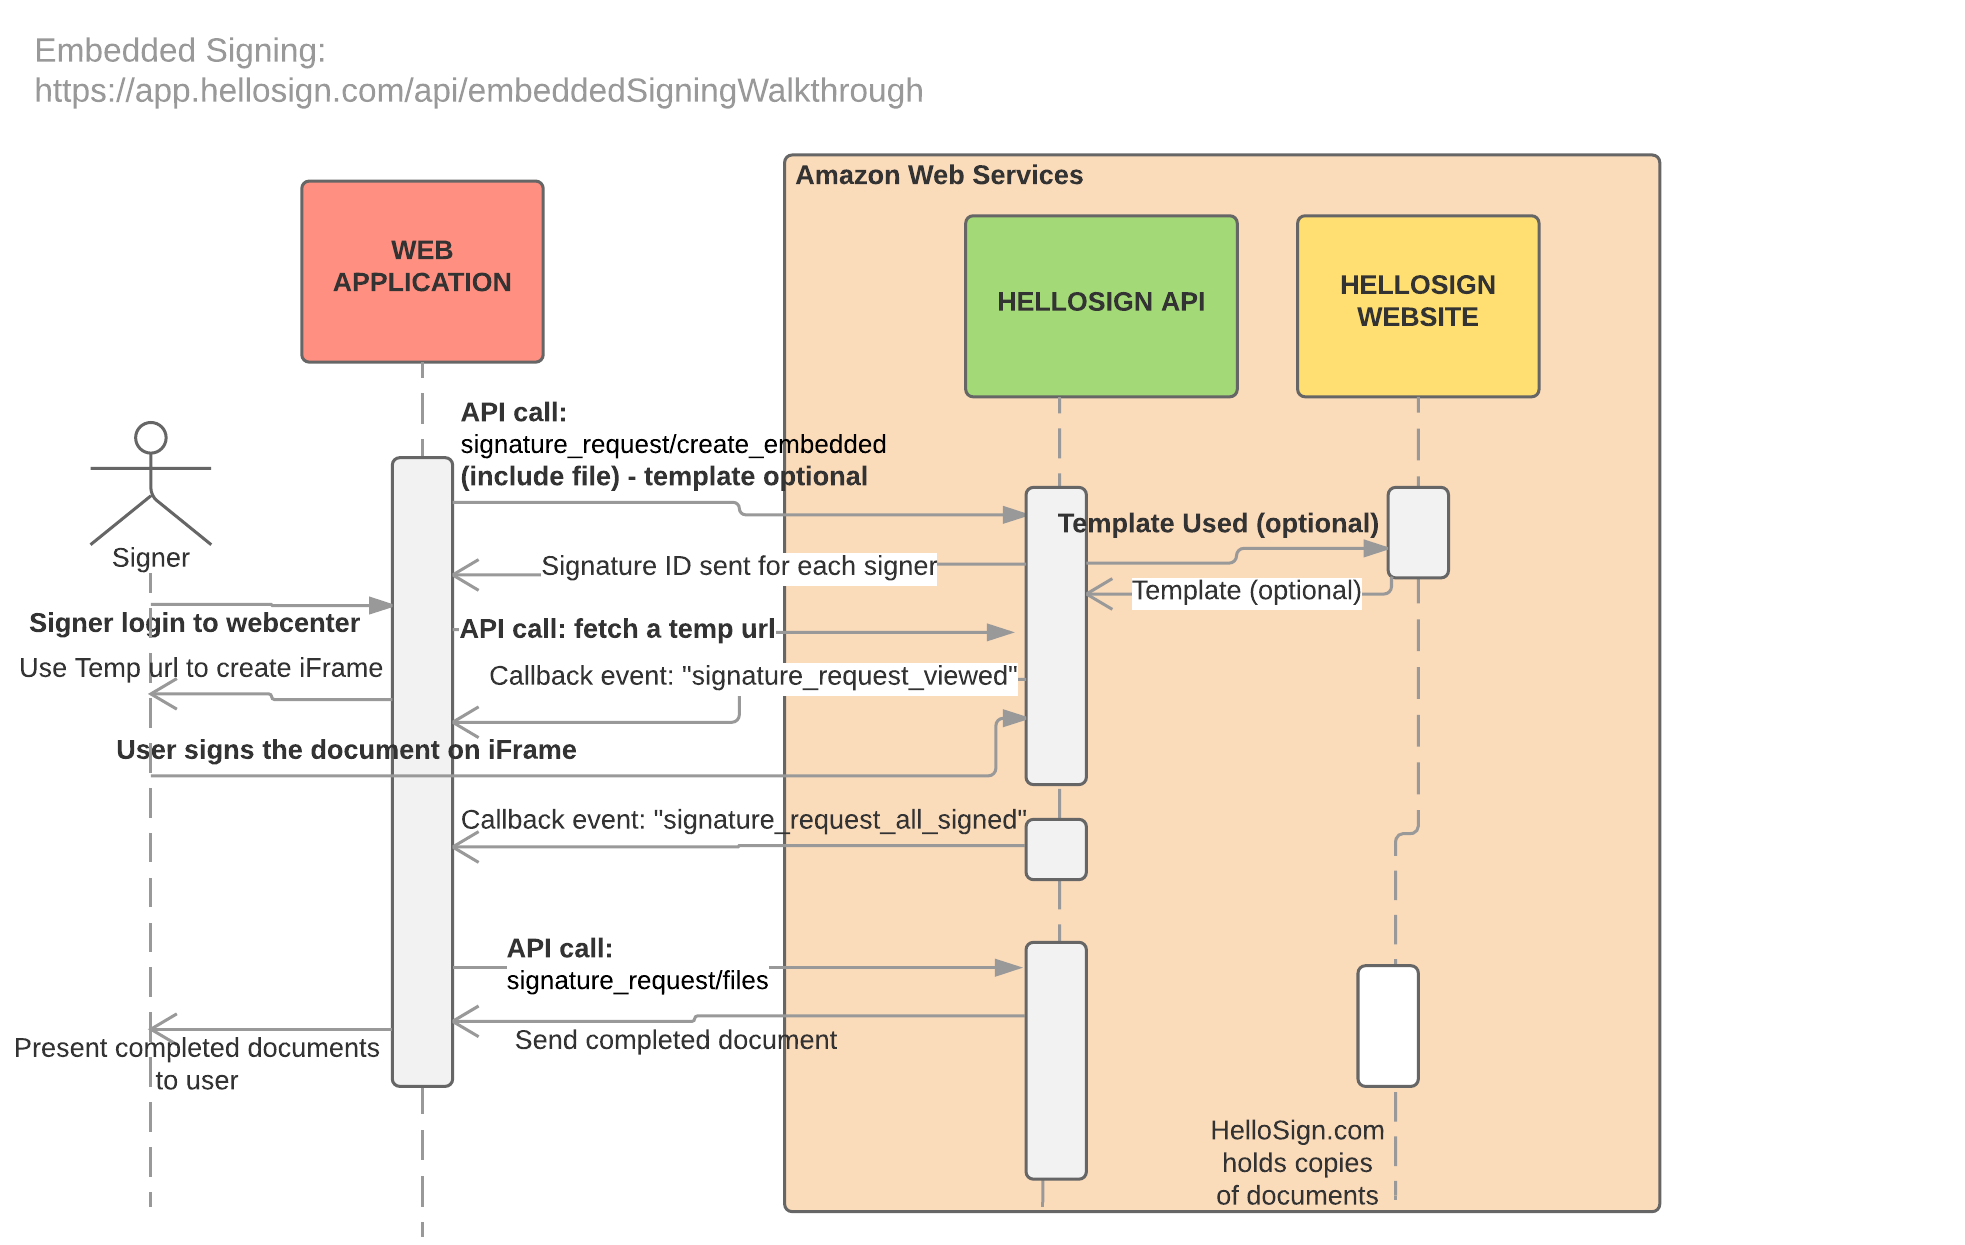 hight resolution of image result for how to represent an api call in sequence diagram